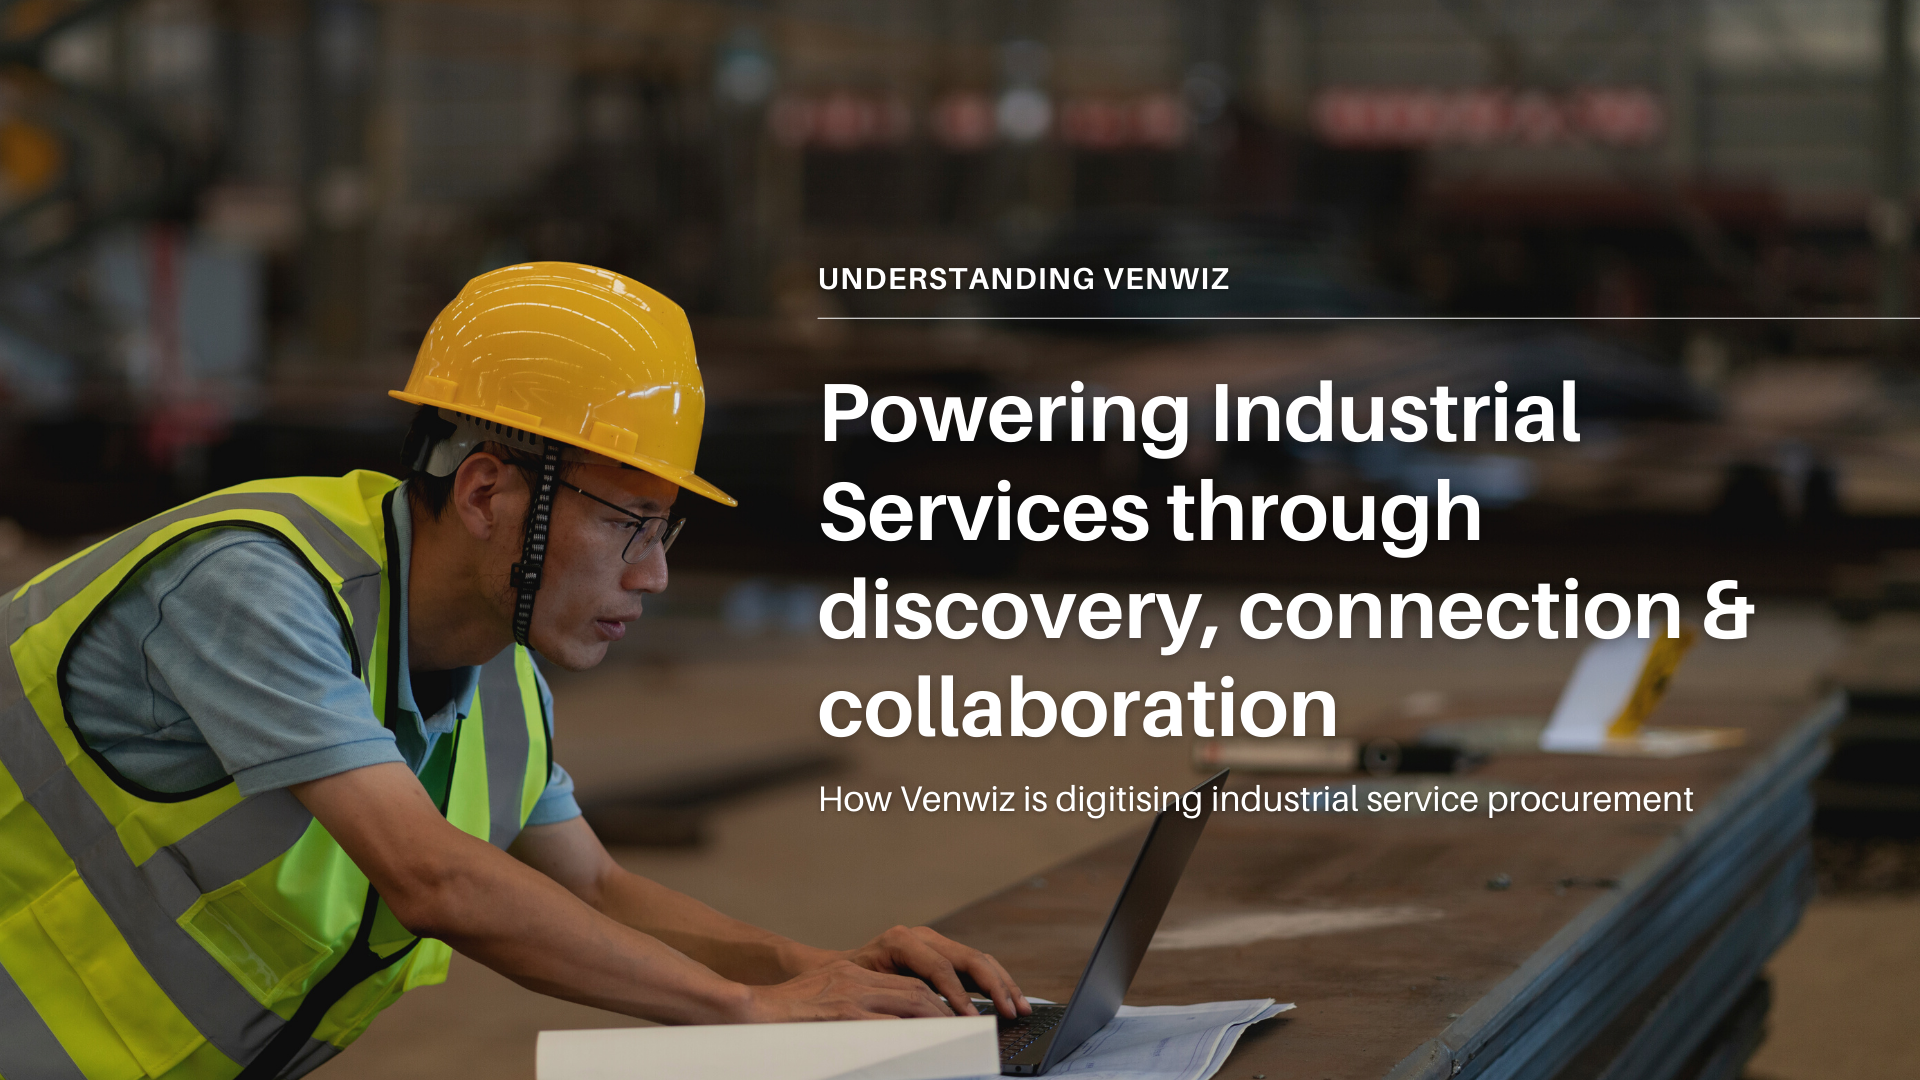 Venwiz: Powering Industrial Services through discovery, connection & collaboration